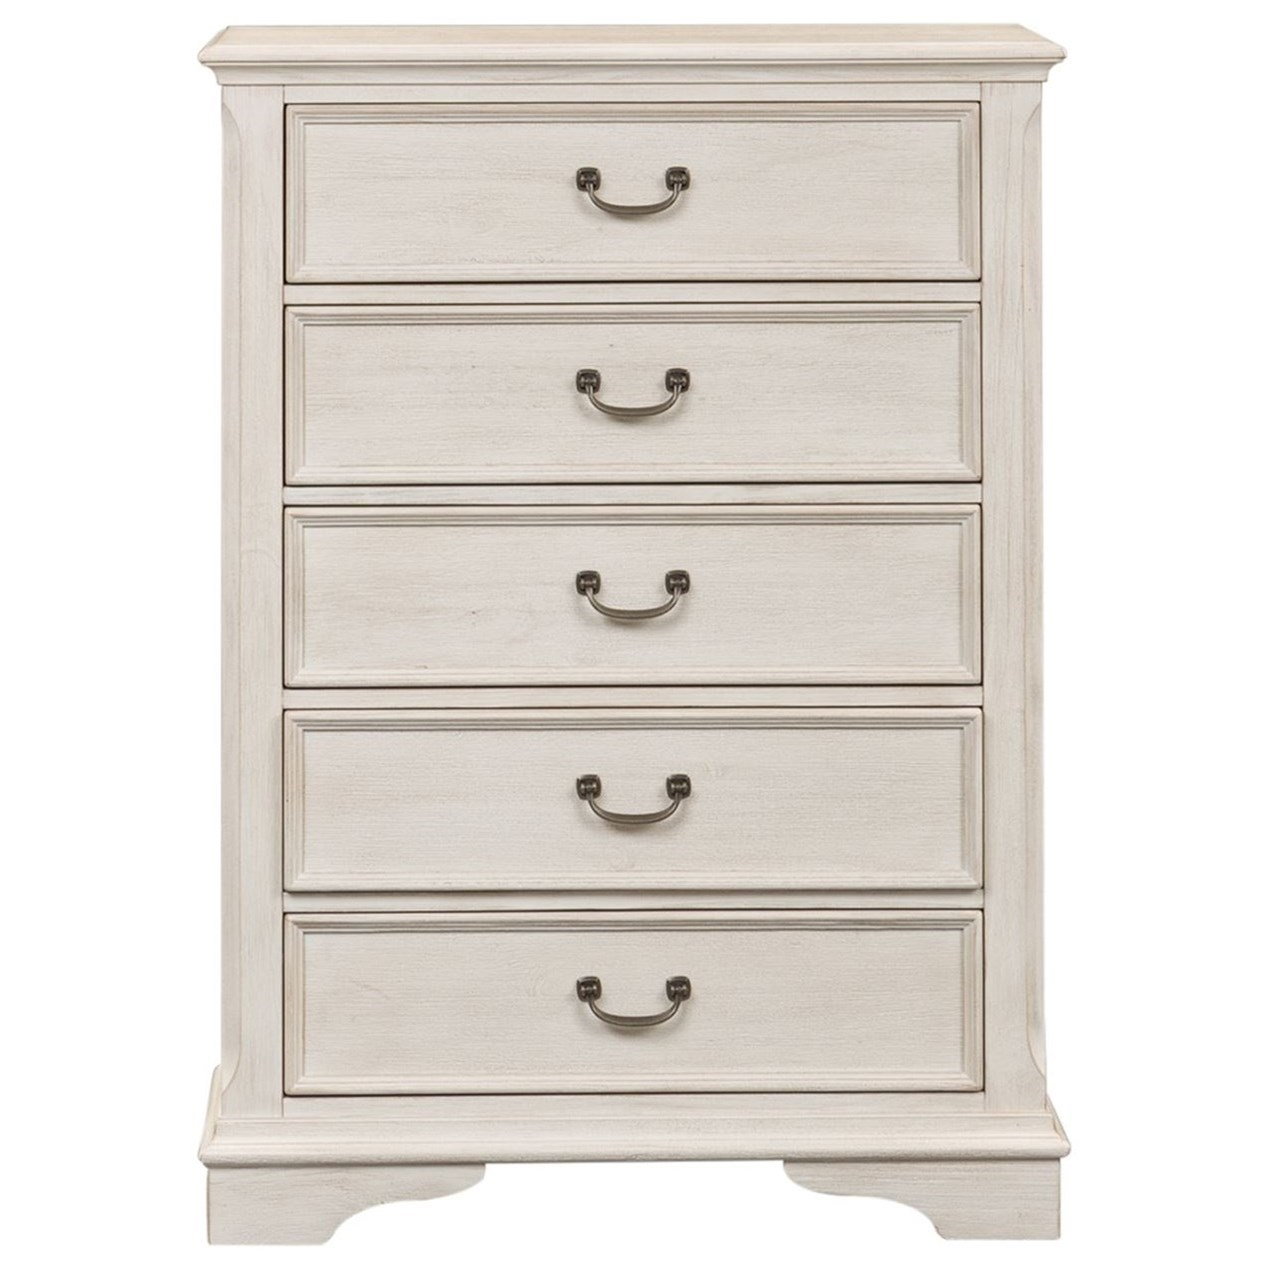 Bayside Bedroom 5 Drawer Chest by Liberty Furniture at Johnny Janosik